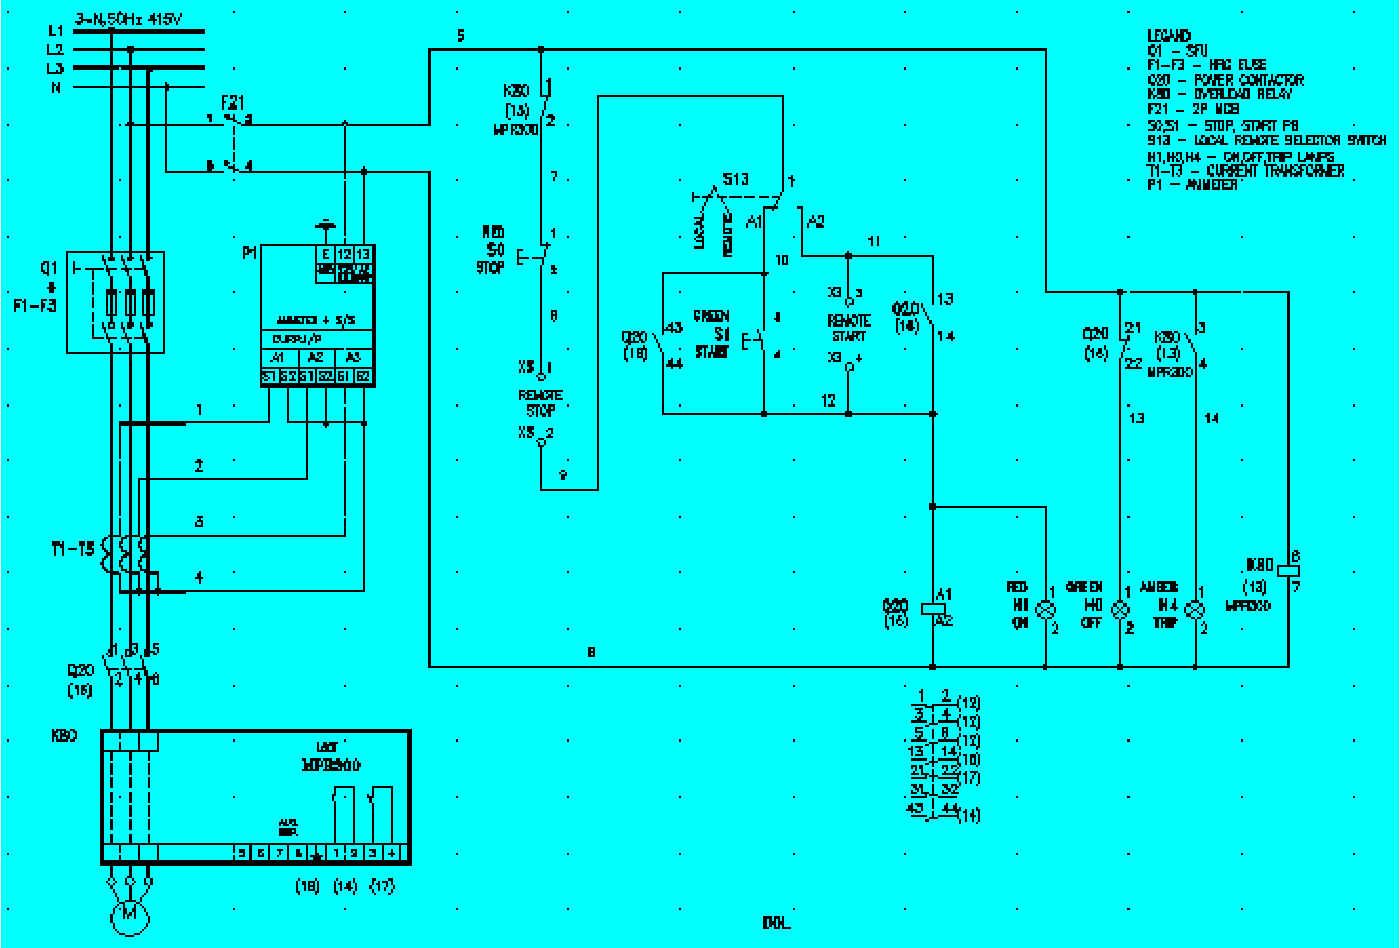 Power Lifier Circuit Diagram On Wiring Philips Refrigerator Ht Panel Schema Diagrams Ga Transformer Data Main Electrical